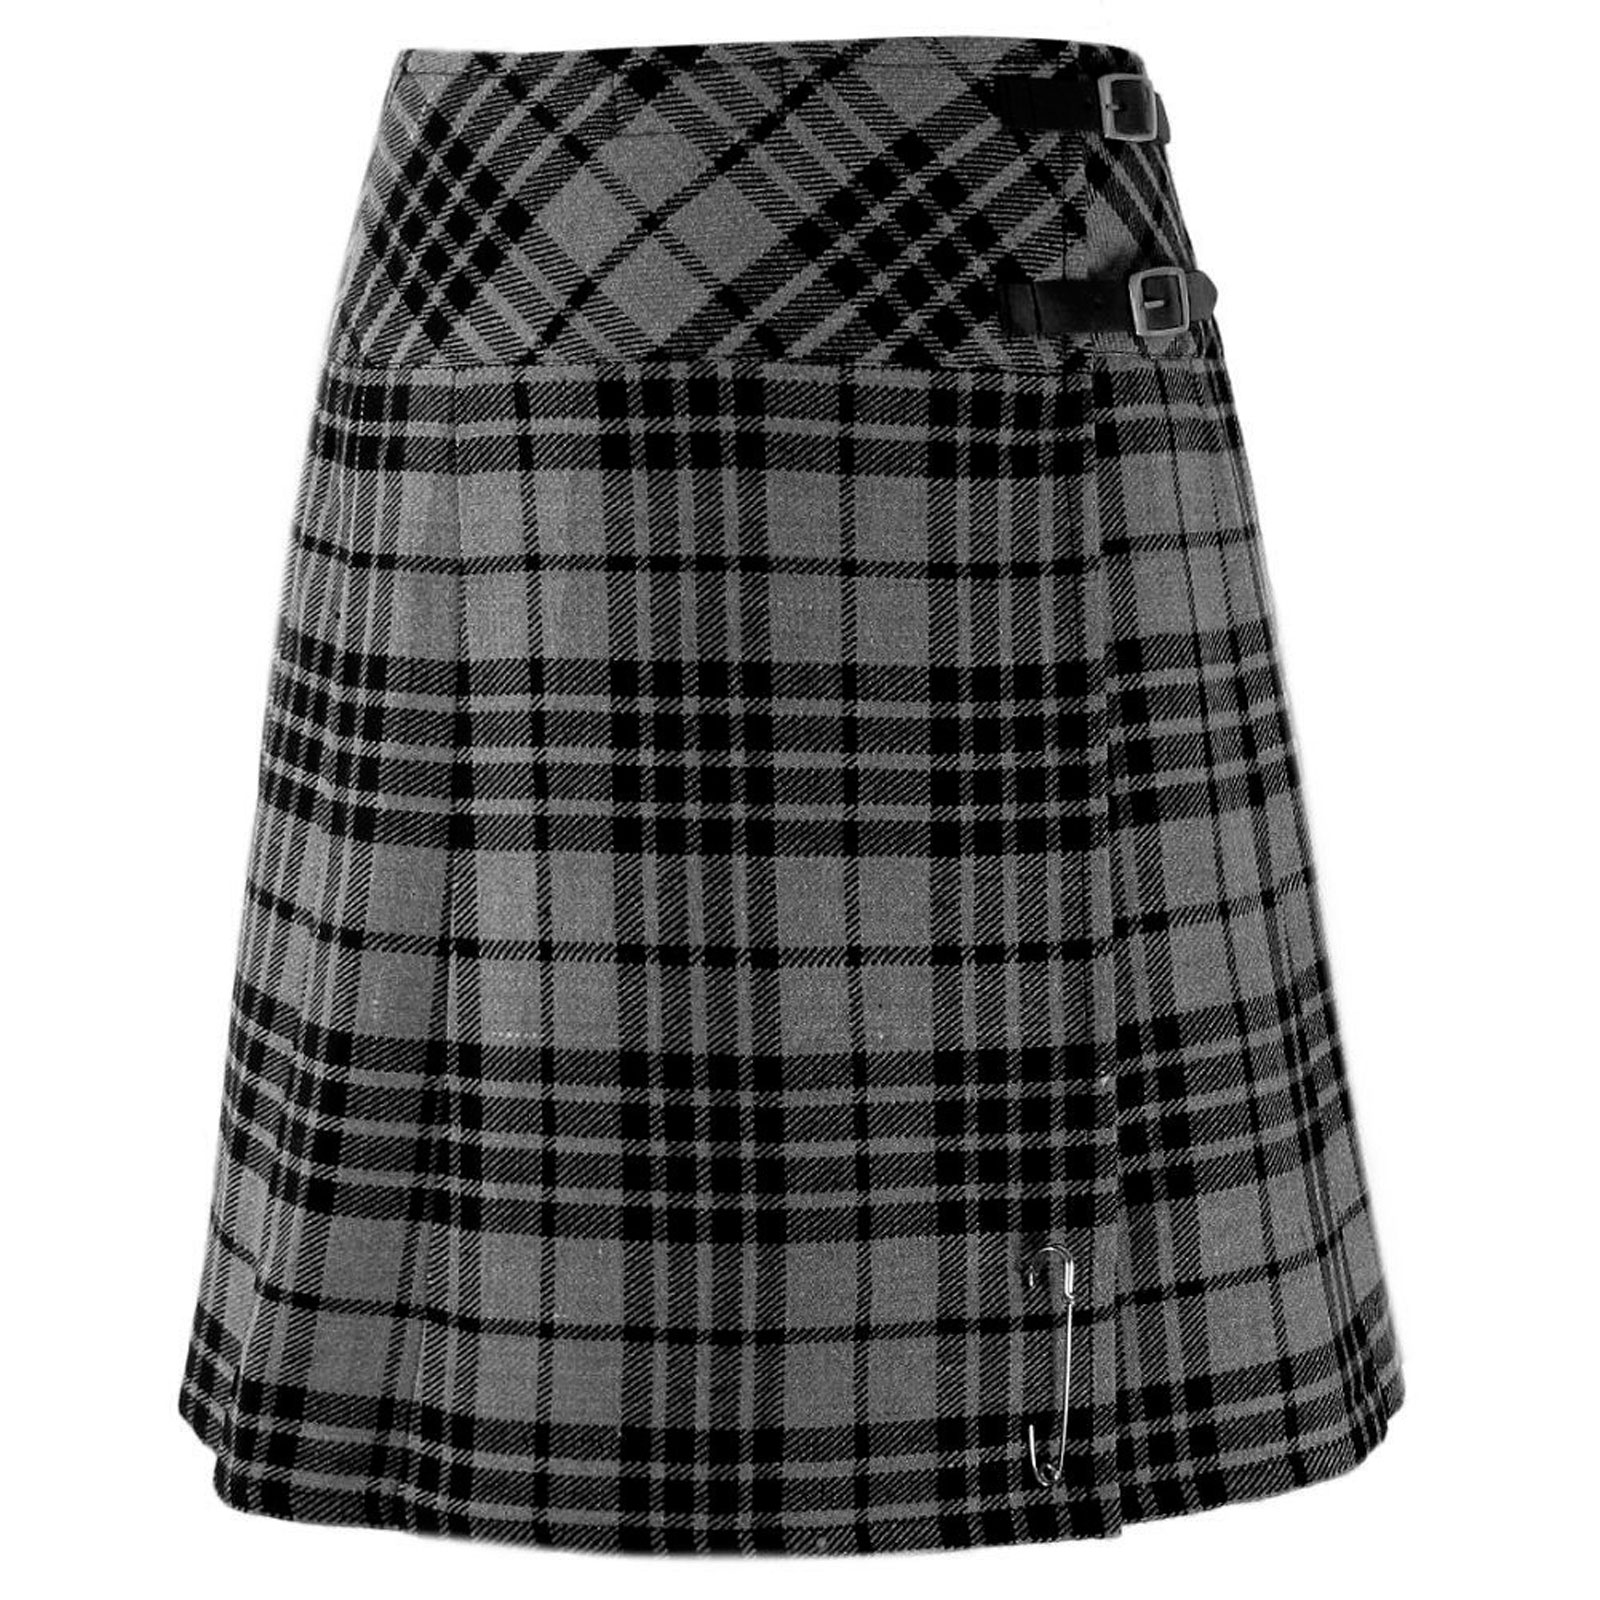 billie-granite-gray-tartan-scottish-kilt-front